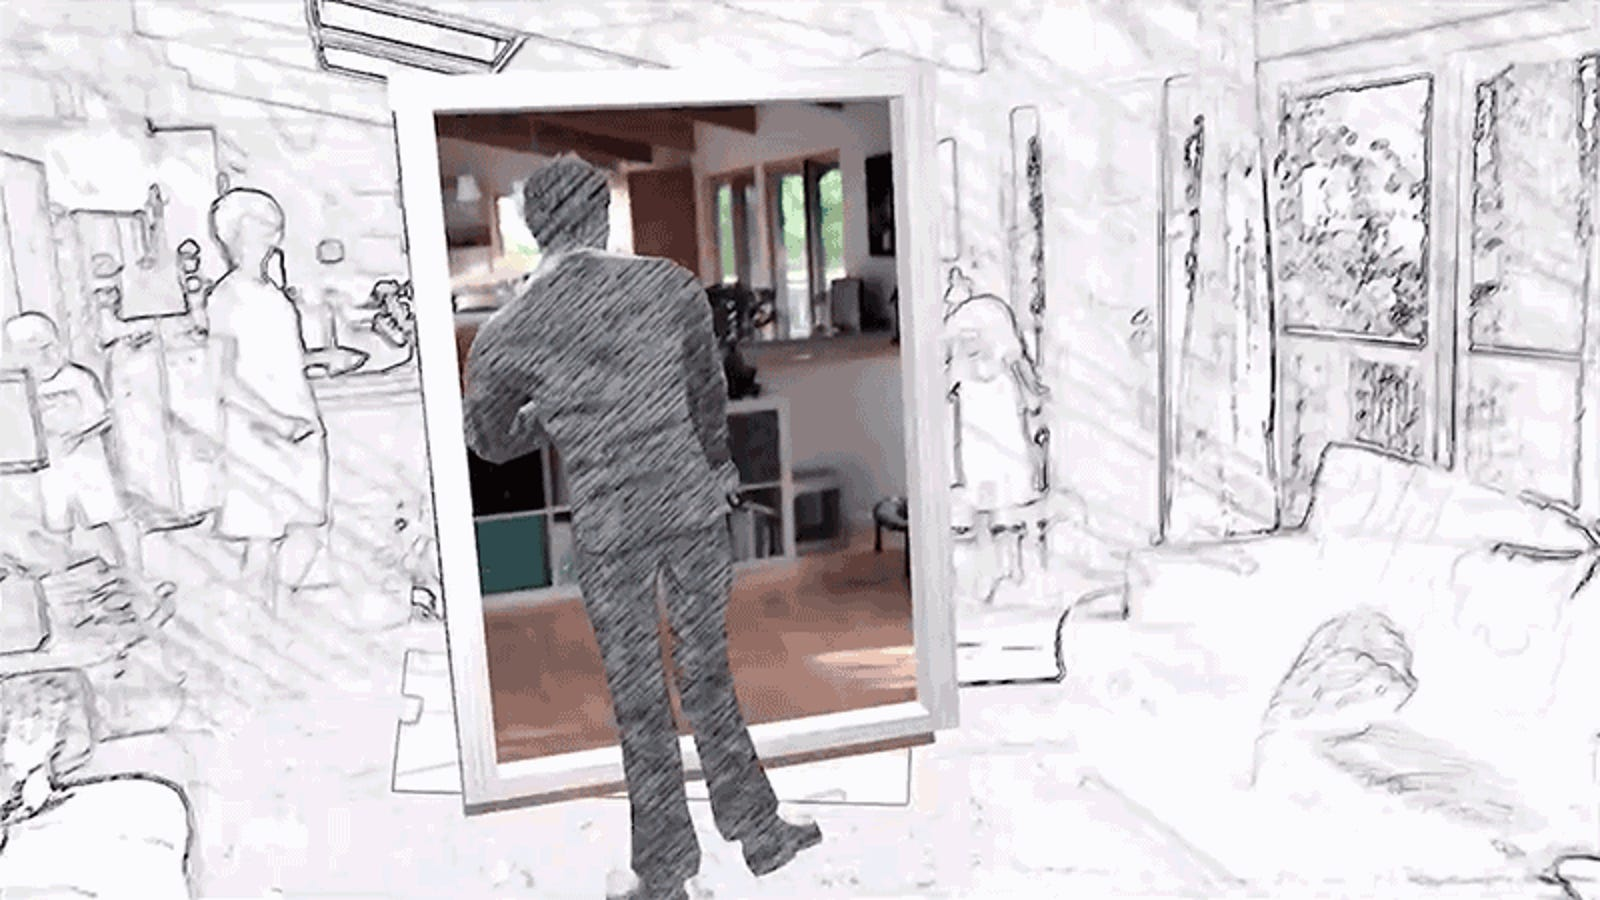 Brilliant Augmented Reality App Lets You Star in Your Own '80s Music Video